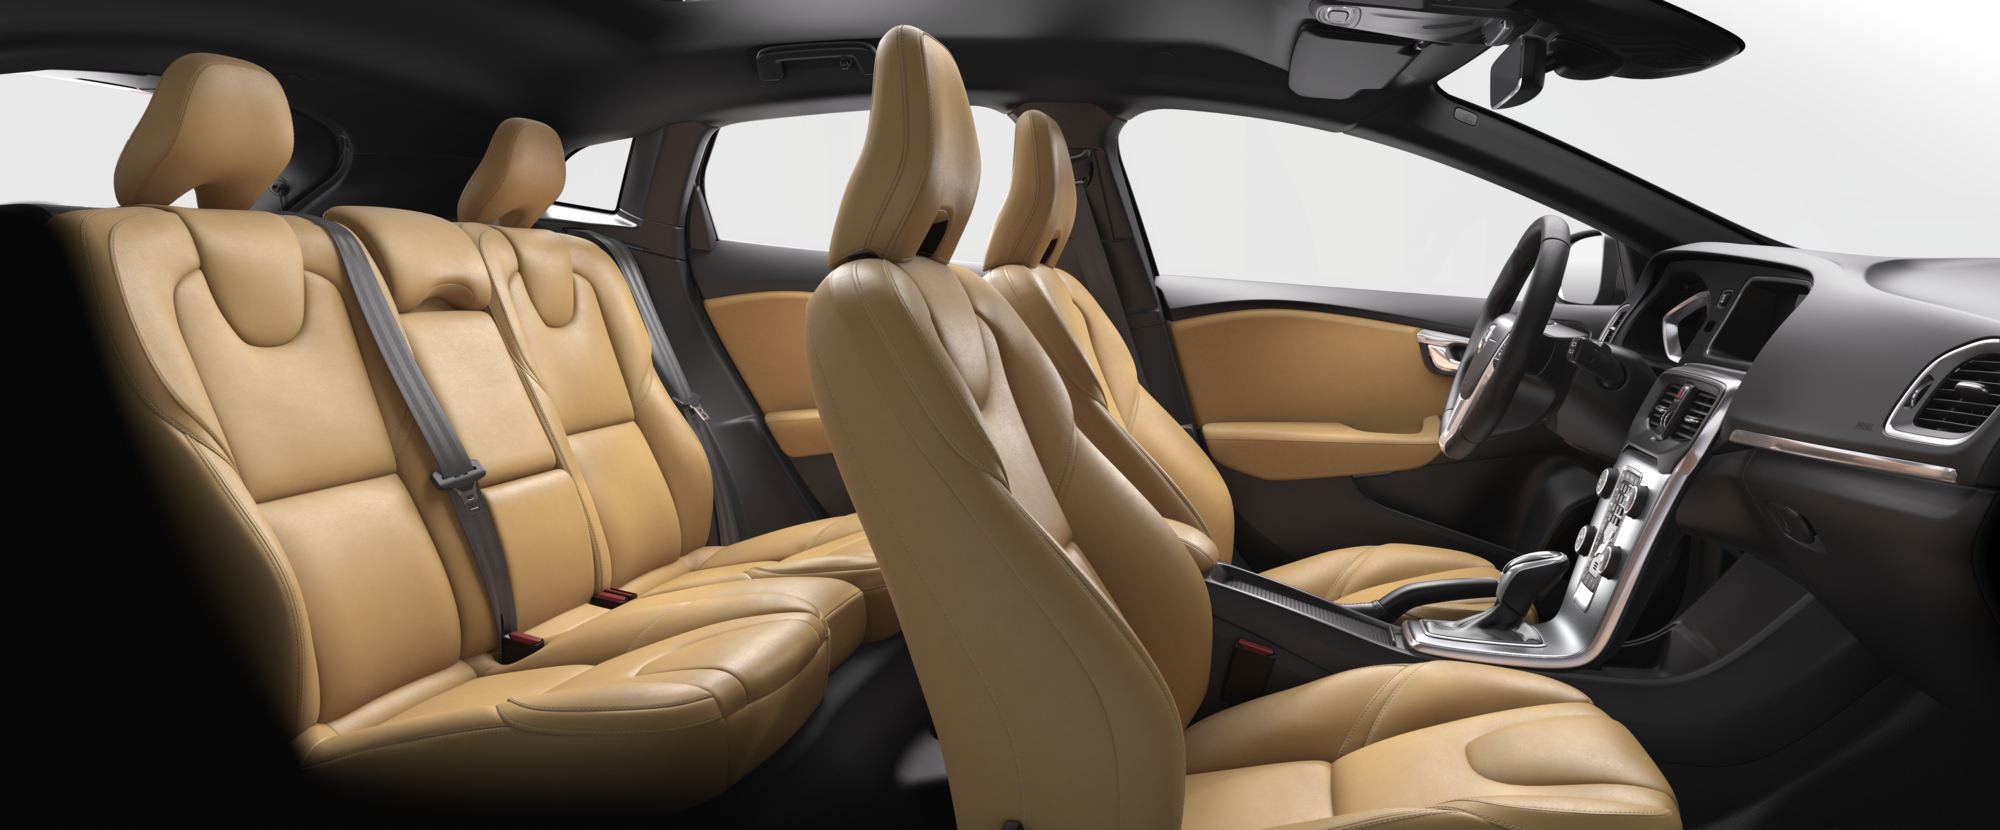 Interior shot of the Volvo V40 with Amber / Charcoal Leather Seats